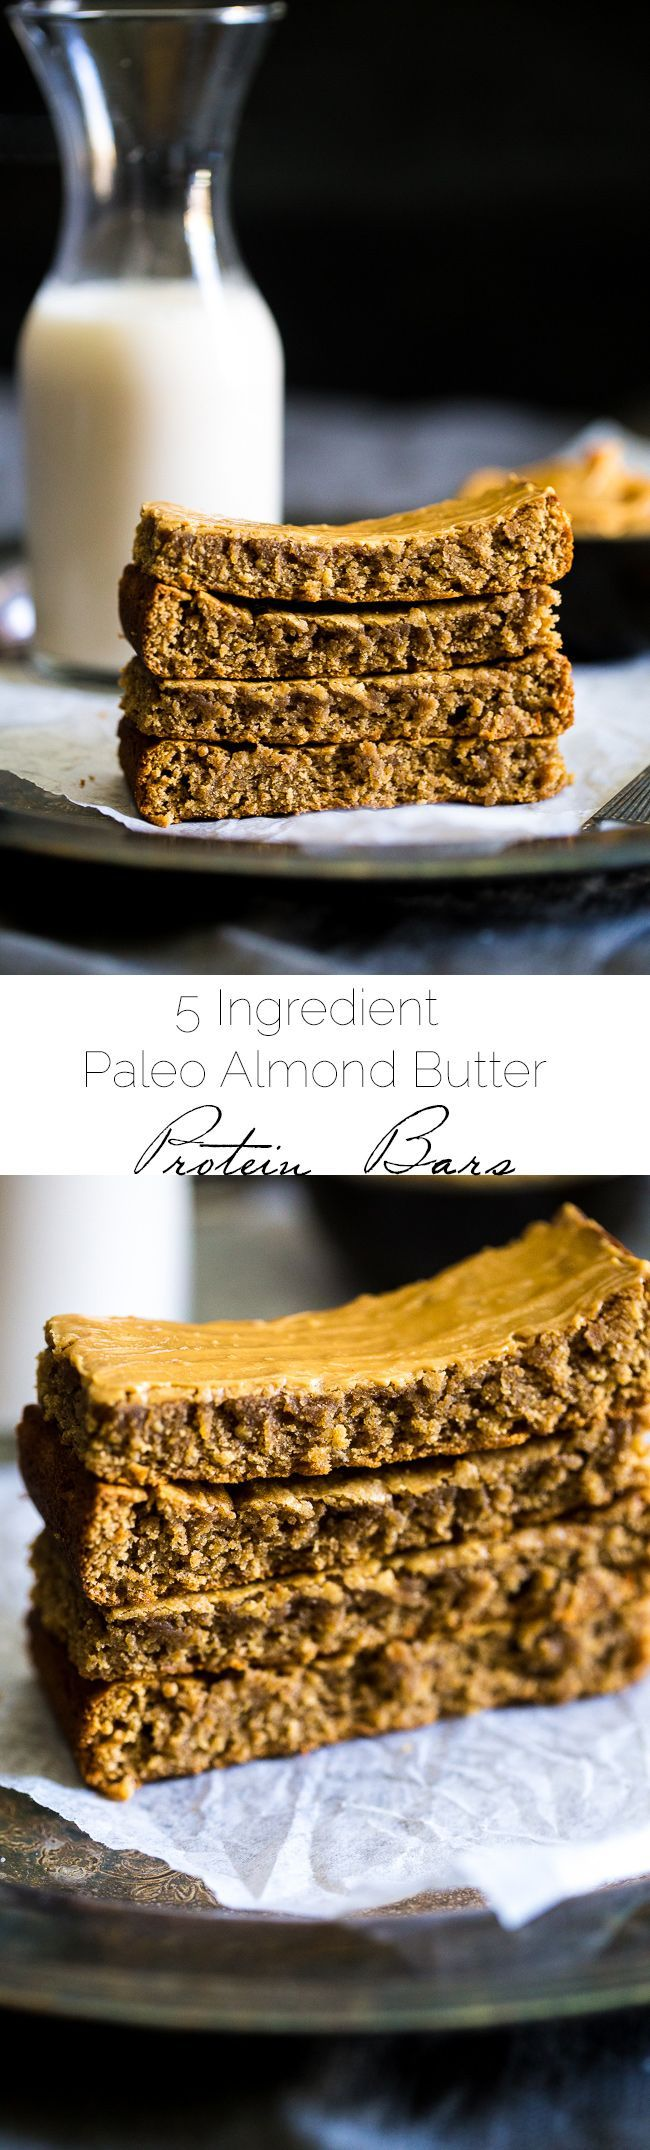 These homemade protein bars are Paleo friendly and require only 5 ingredients and one bowl! They're soft chewy and perfect for a healthy, portable snack!